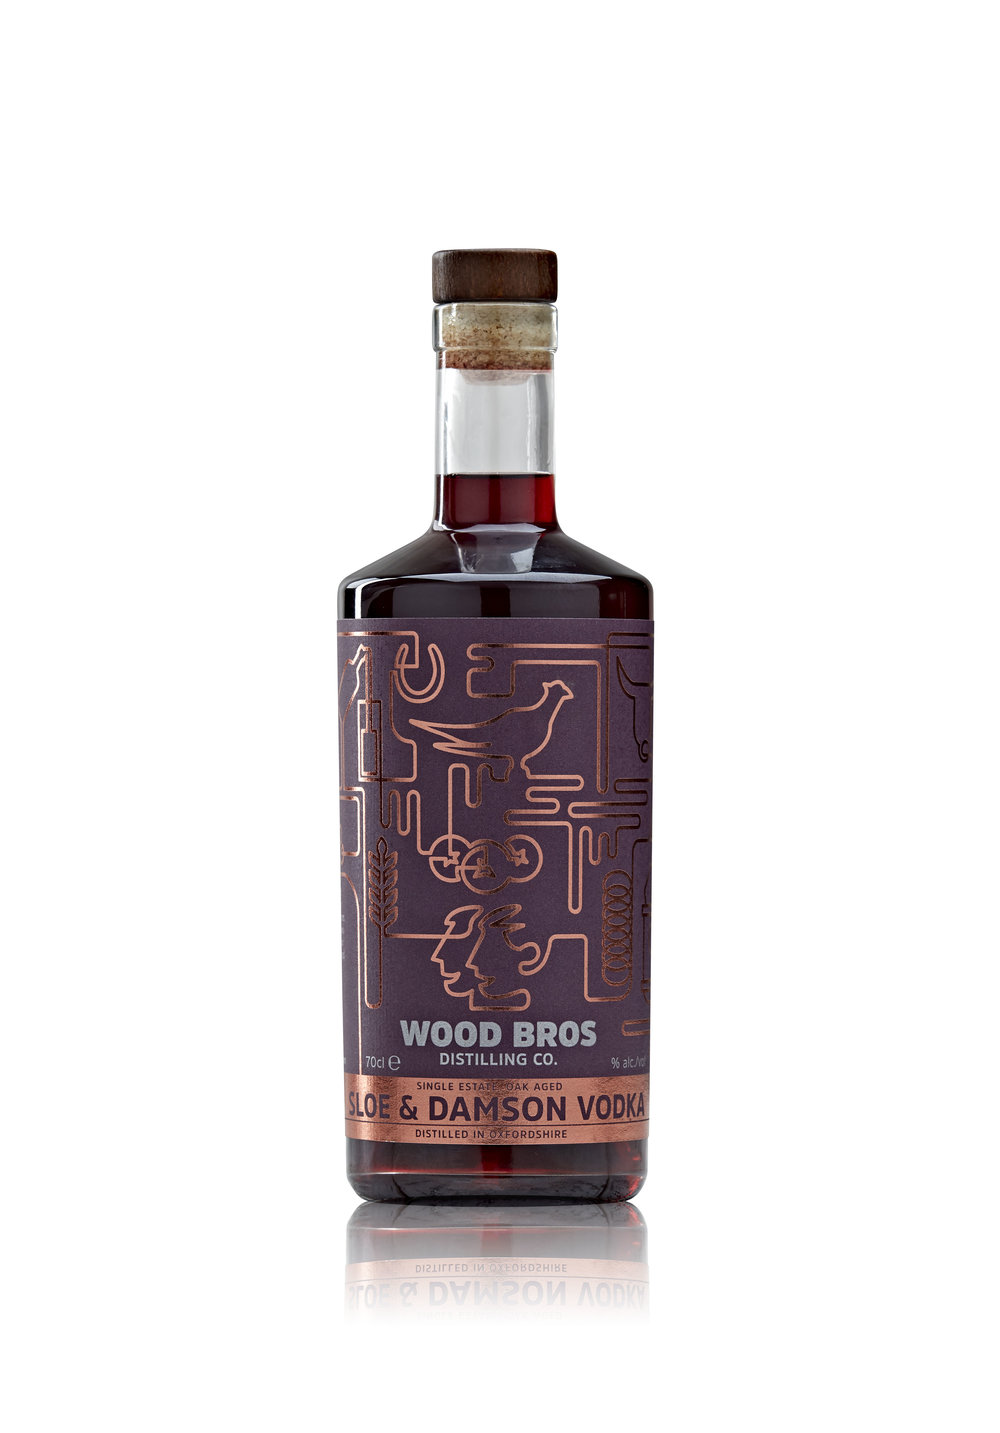 Sloe and Damson Vodka - Wood Brothers Sloe and Damson Vodka liqueur is made with sloes and damsons foraged from the hedgerows on our farm, stepped in our winter wheat vodka and aged in barrels.